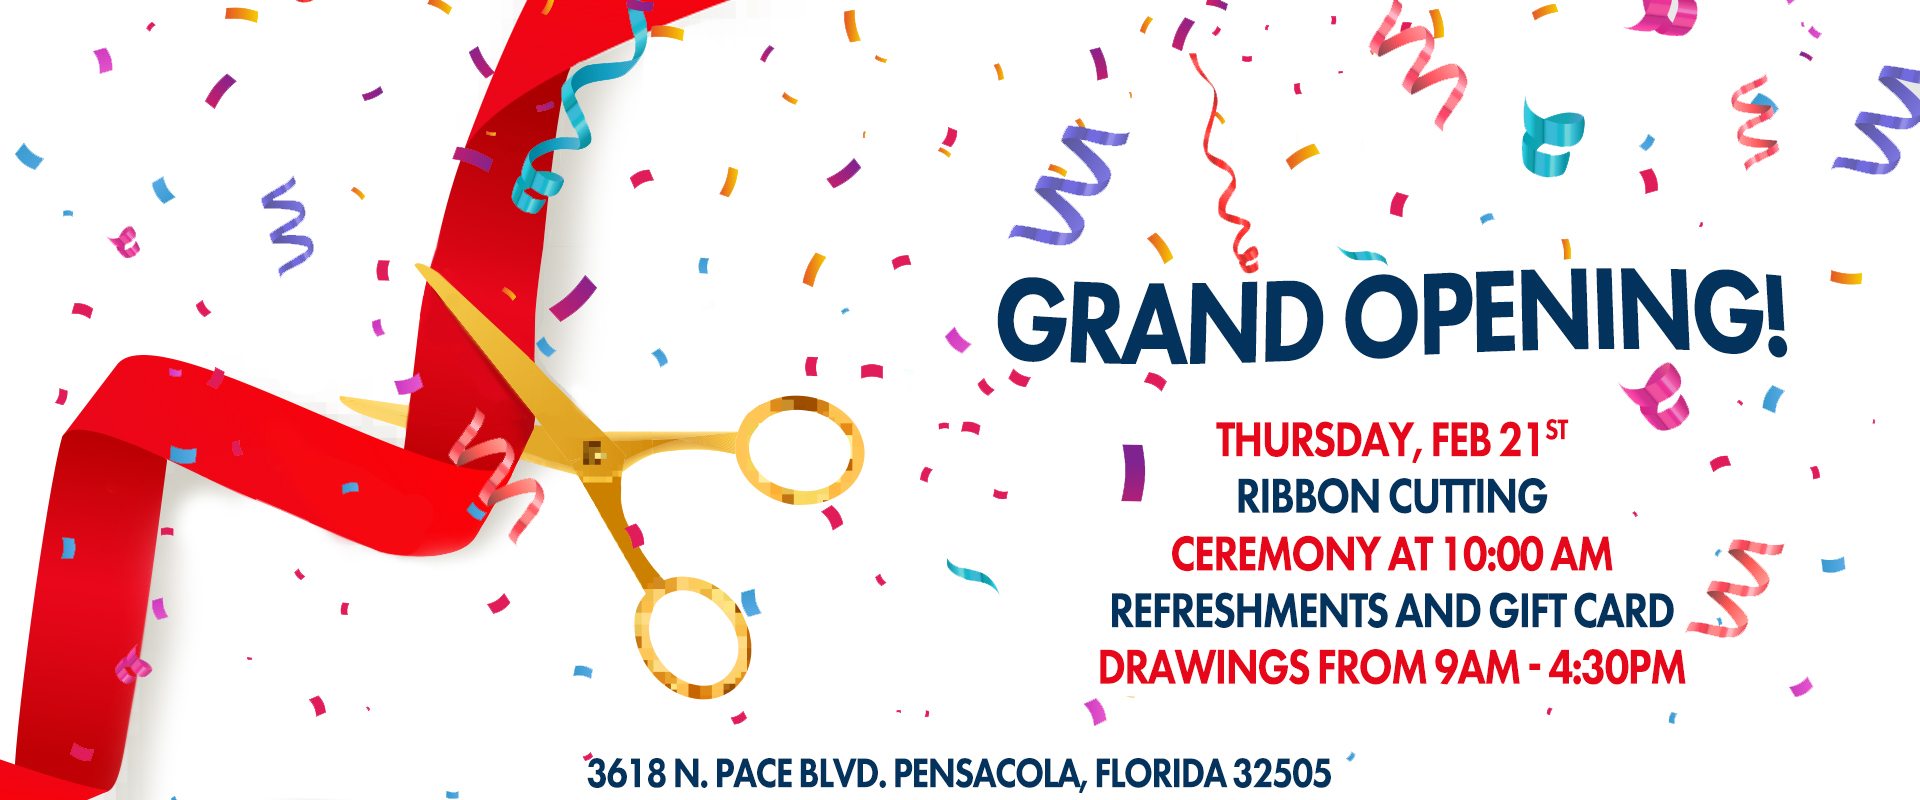 Join us for the Grand Opening of our New Pensacola Location. The Gulf Coast